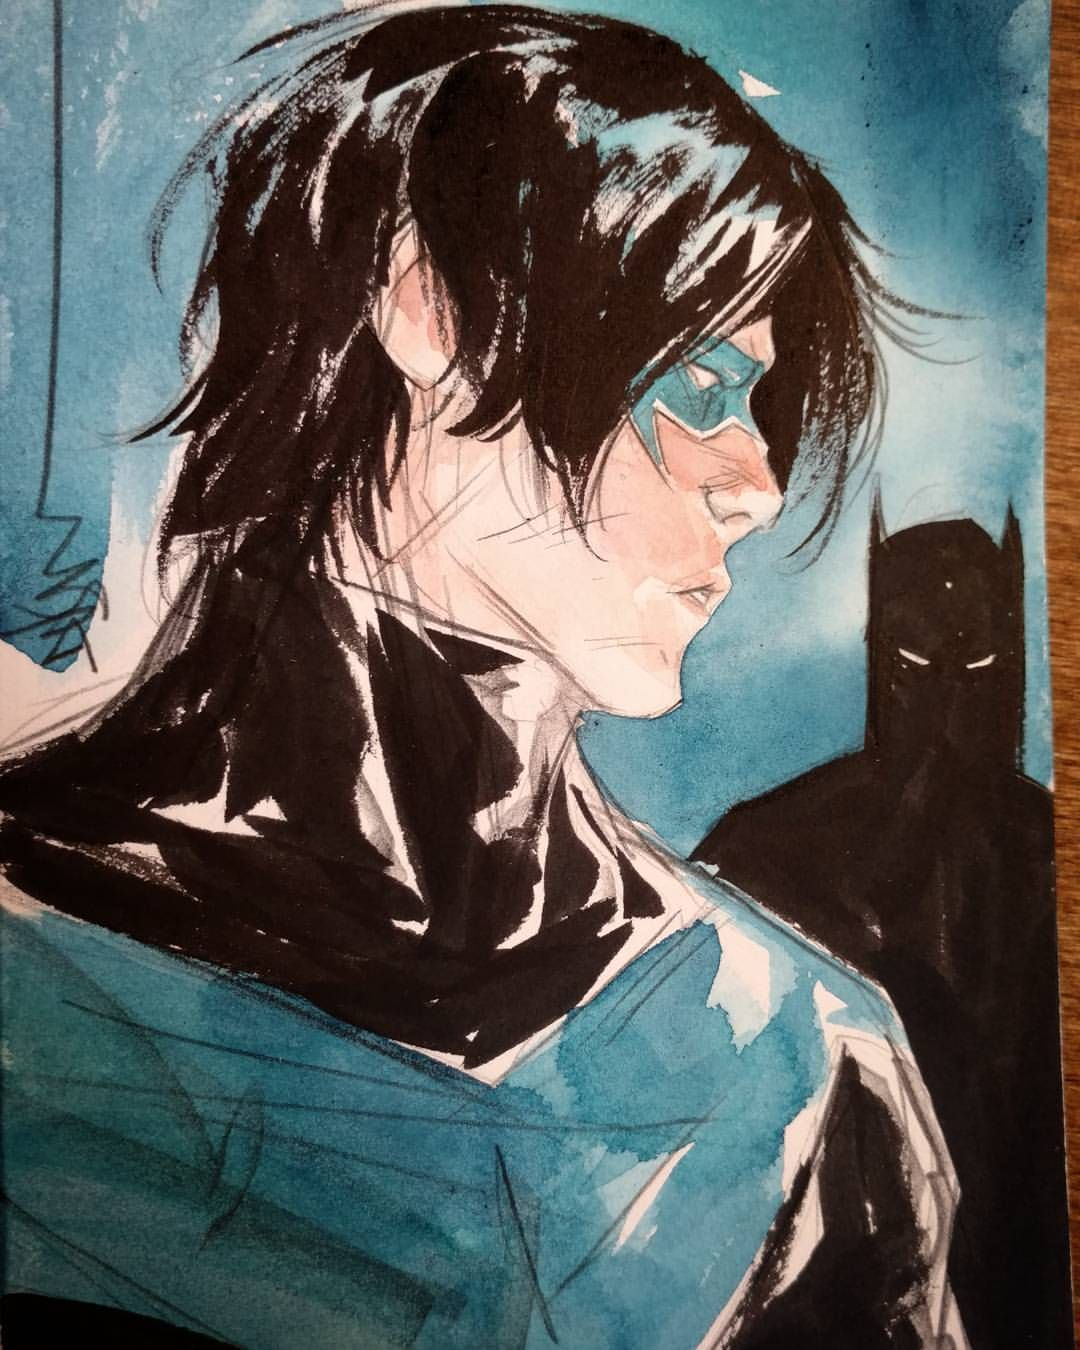 Nightwing and Batman by Dustin Nguyen